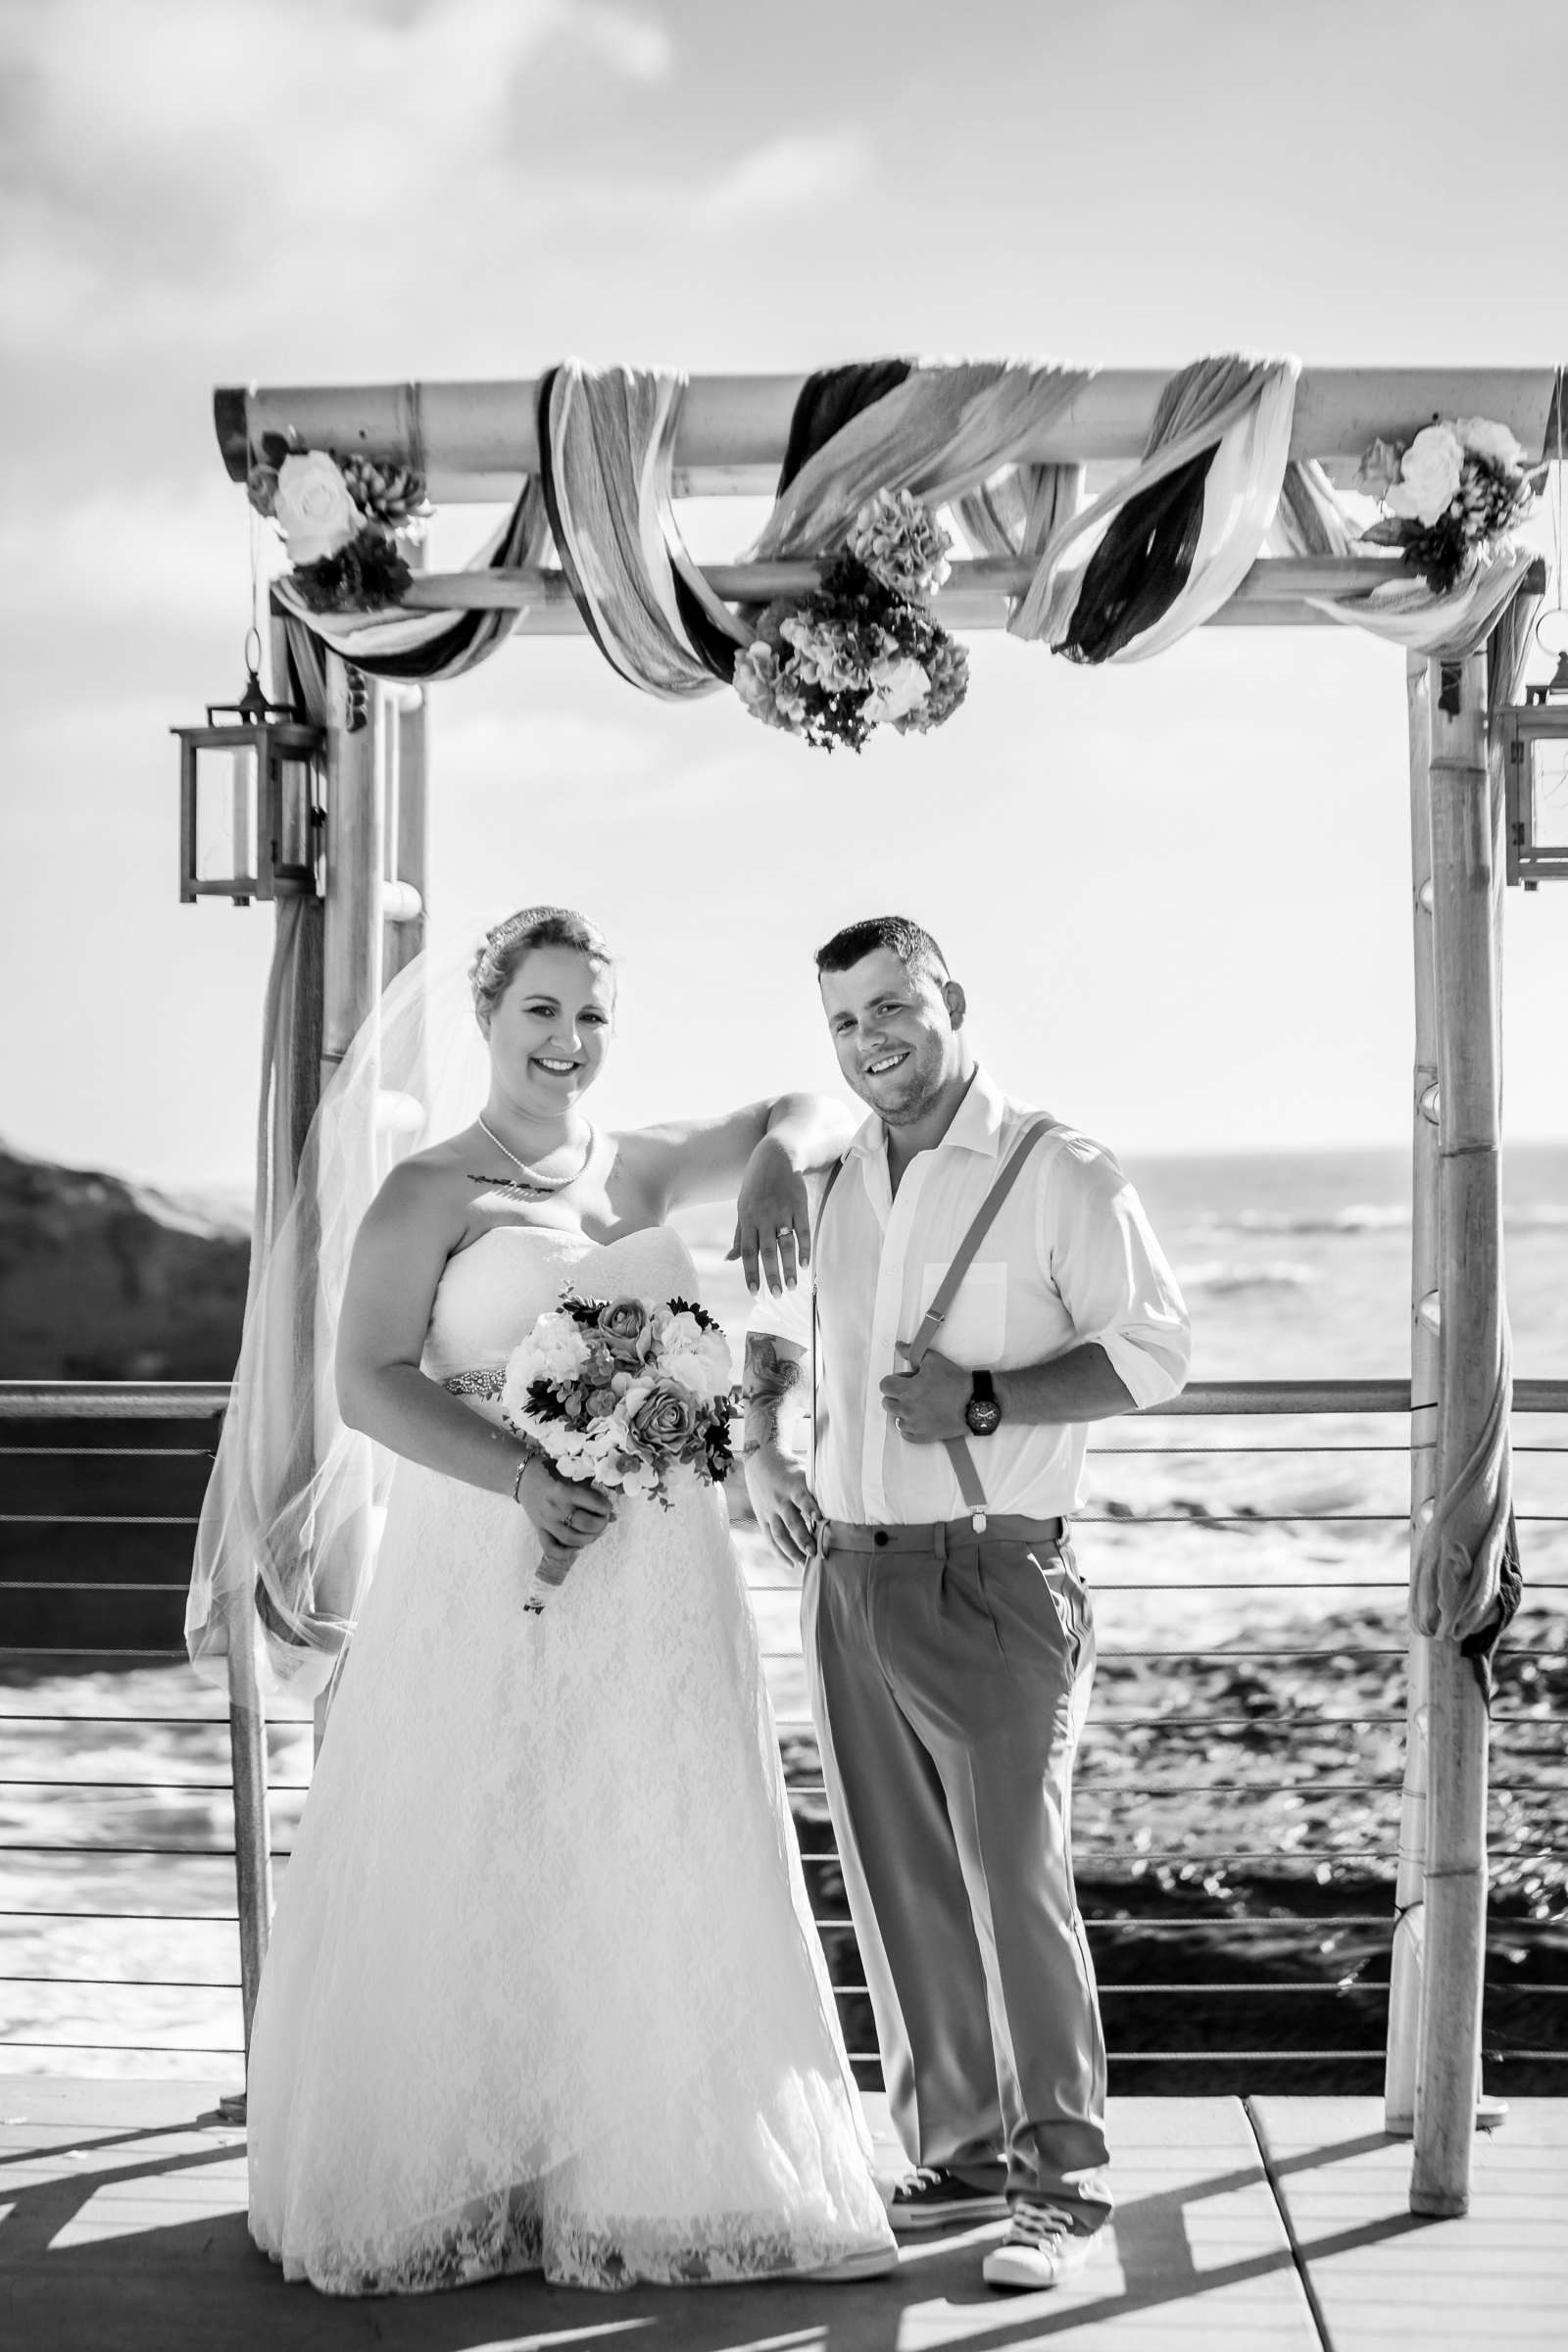 The Inn at Sunset Cliffs Wedding, Melinda and Benjamin Wedding Photo #10 by True Photography